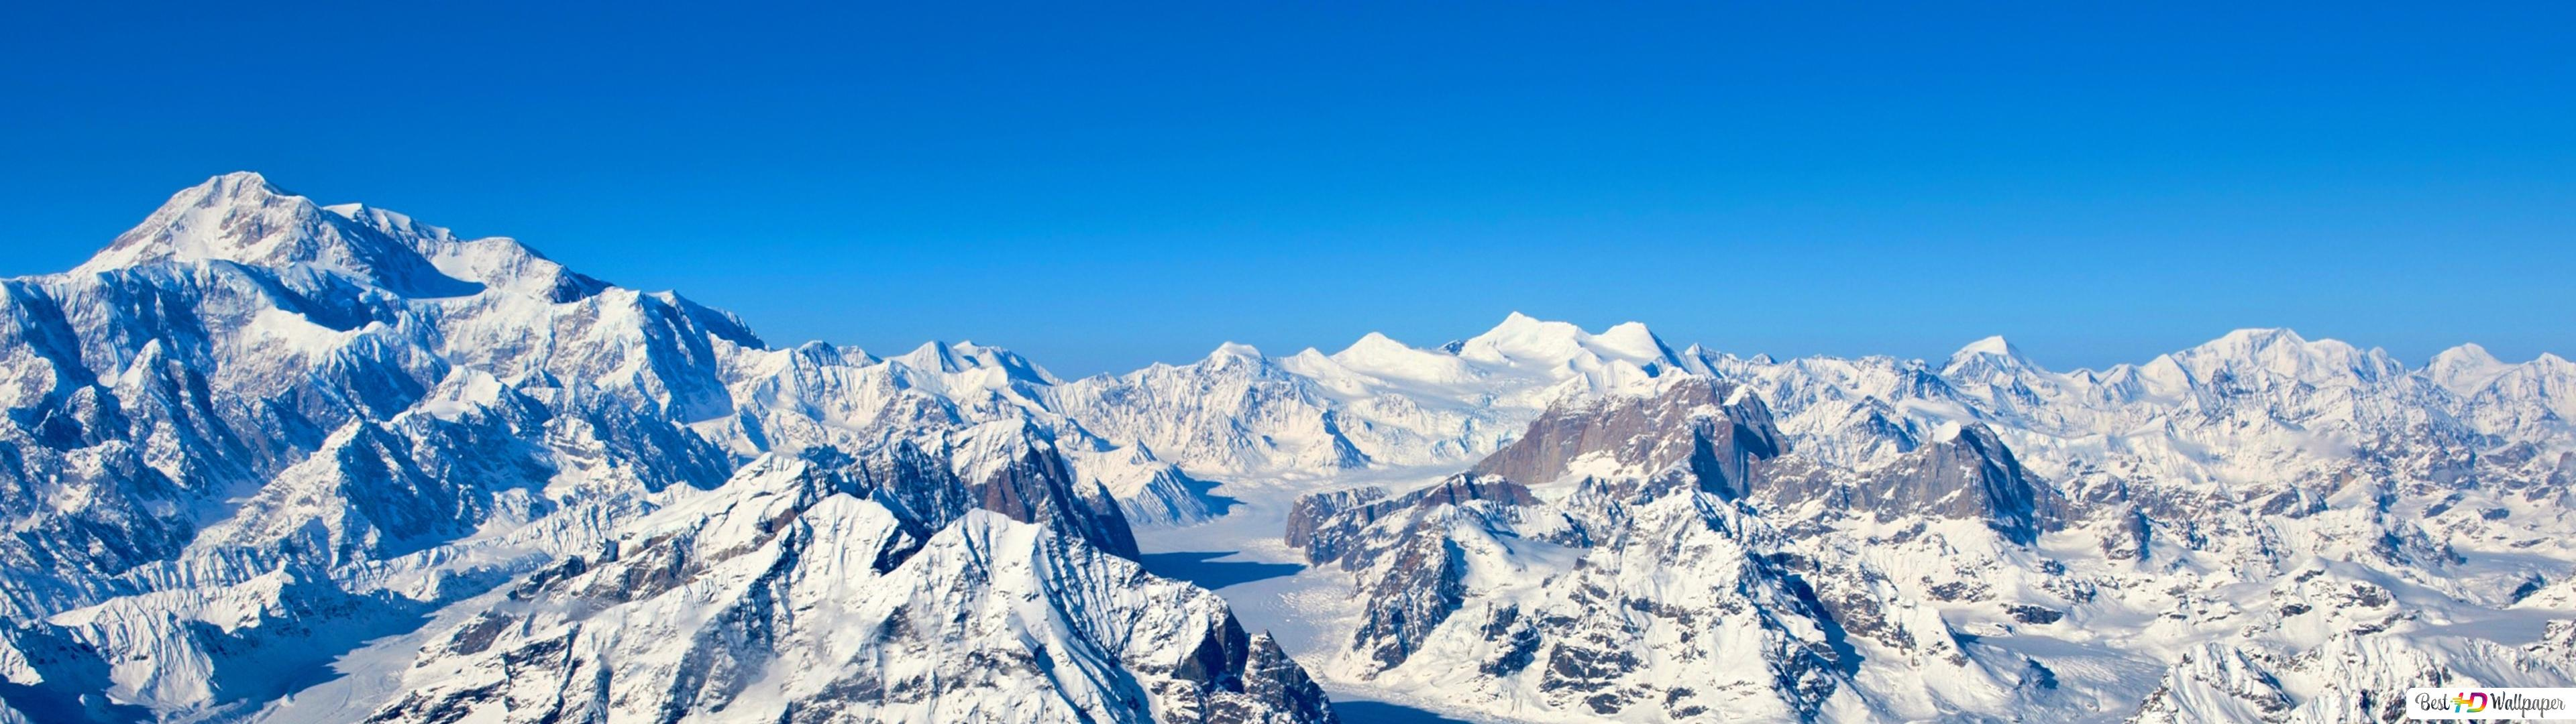 Ice Mountain Hd Wallpaper Download